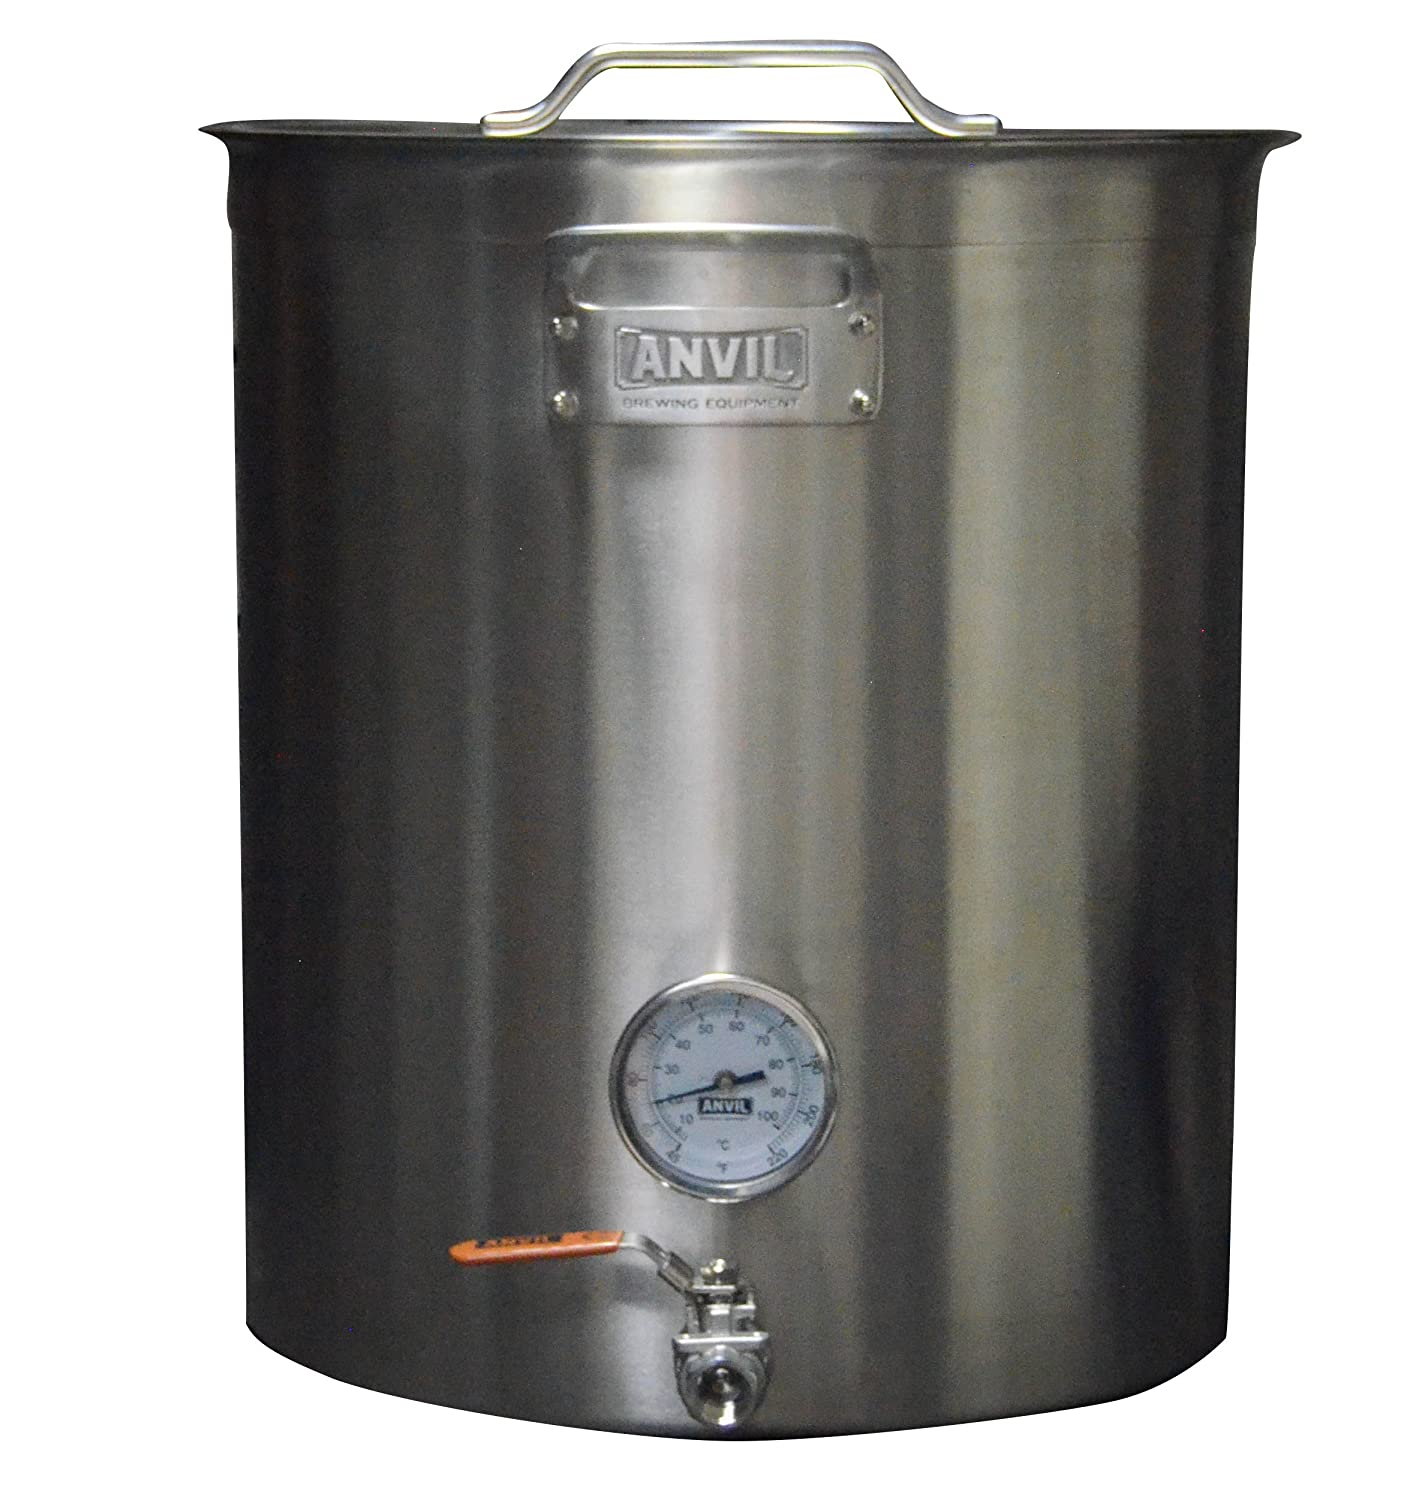 Anvil Brew Kettle, 15 gal